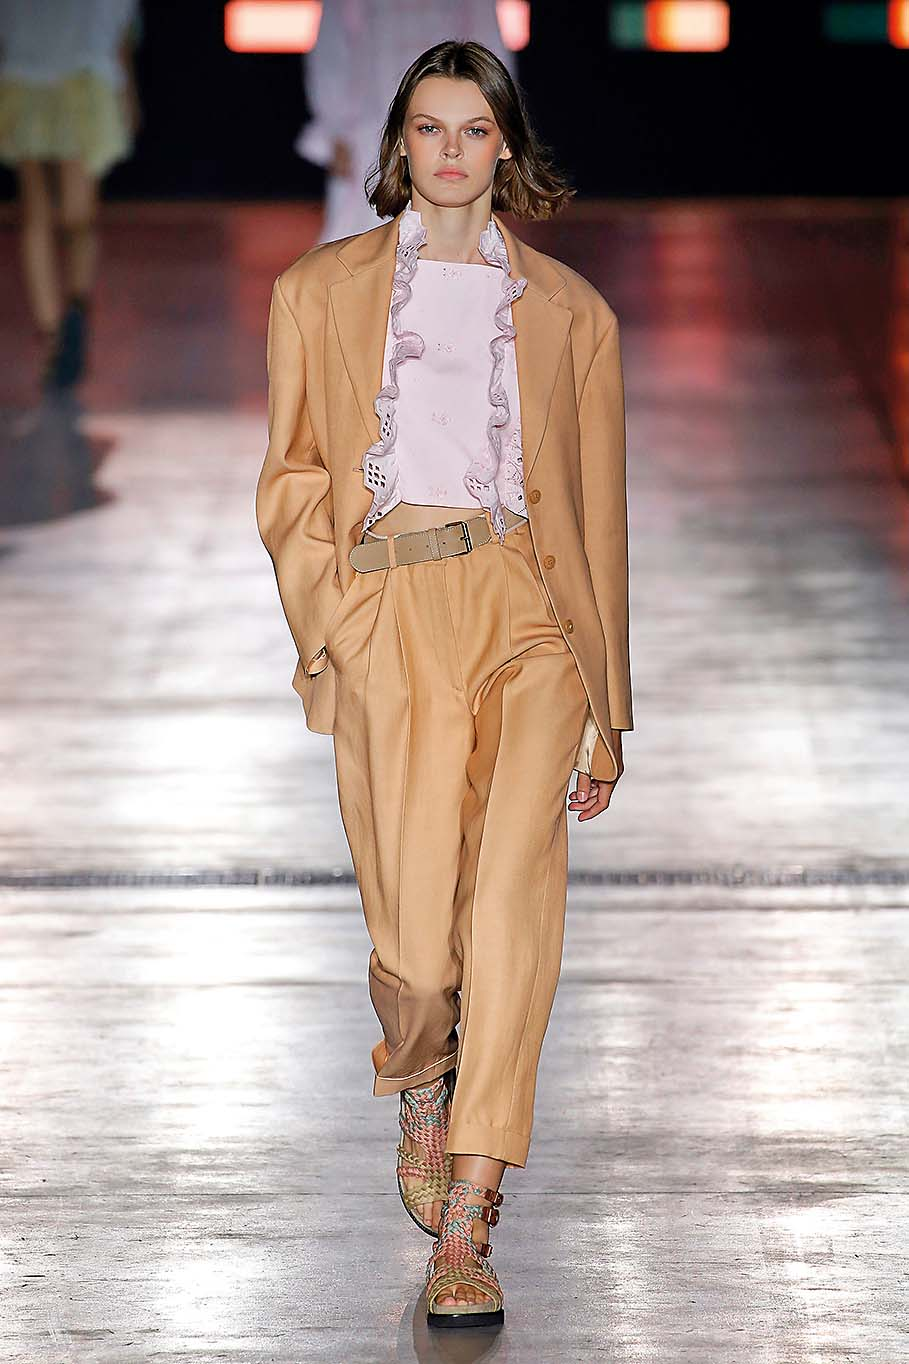 A model walks the runway at the Alberta Ferretti show during Milan Fashion Week Spring/Summer 2019 on September 19, 2018 in Milan, Italy.